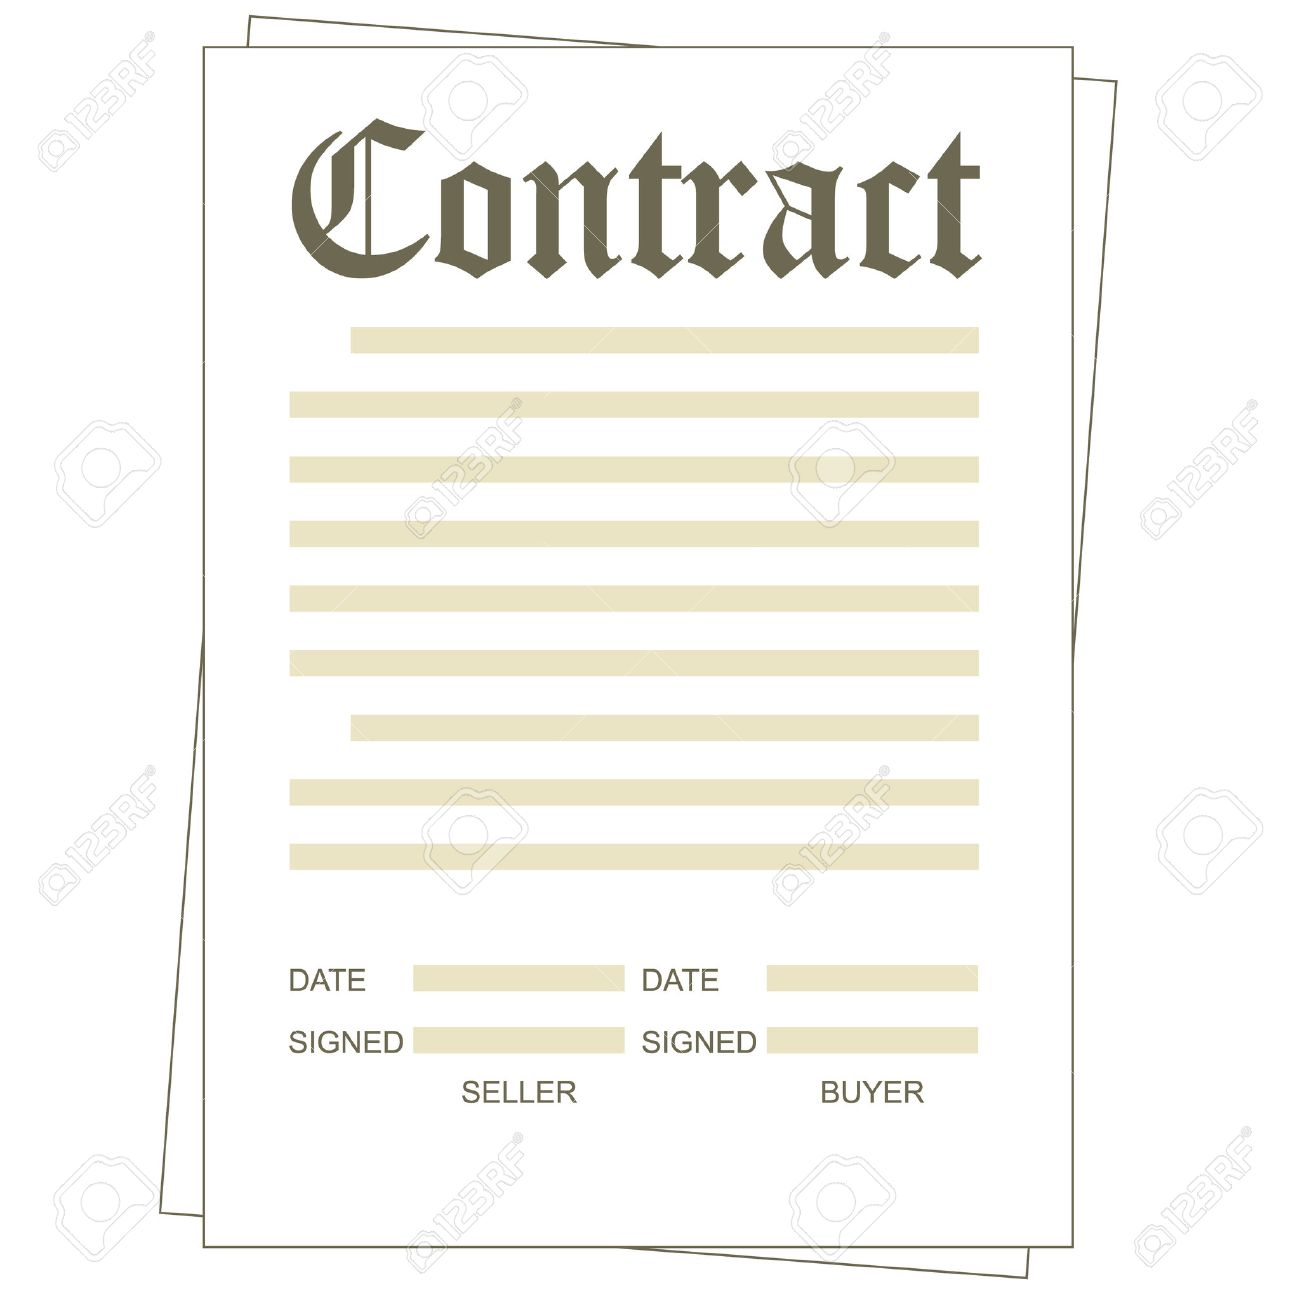 Blank Contract Blank Contract TemplateBlank Construction – Blank Contract